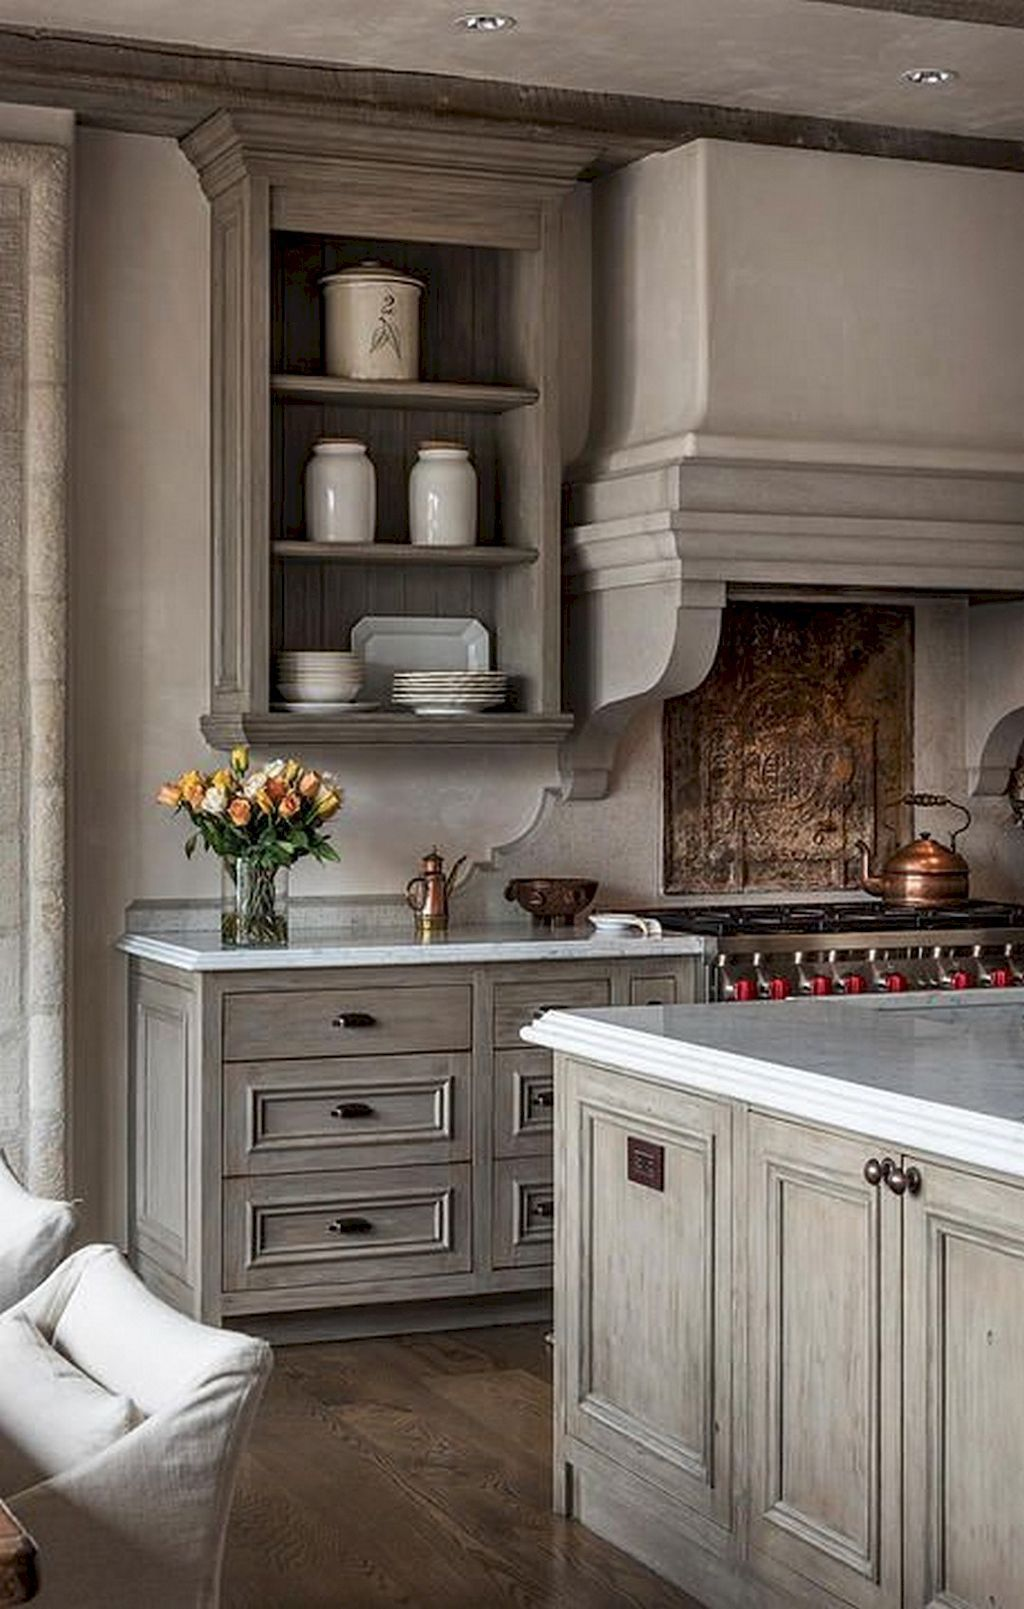 French Country Kitchen Design & Decor Ideas 21  Washburn Adorable How To Design Kitchen Cabinets Design Ideas